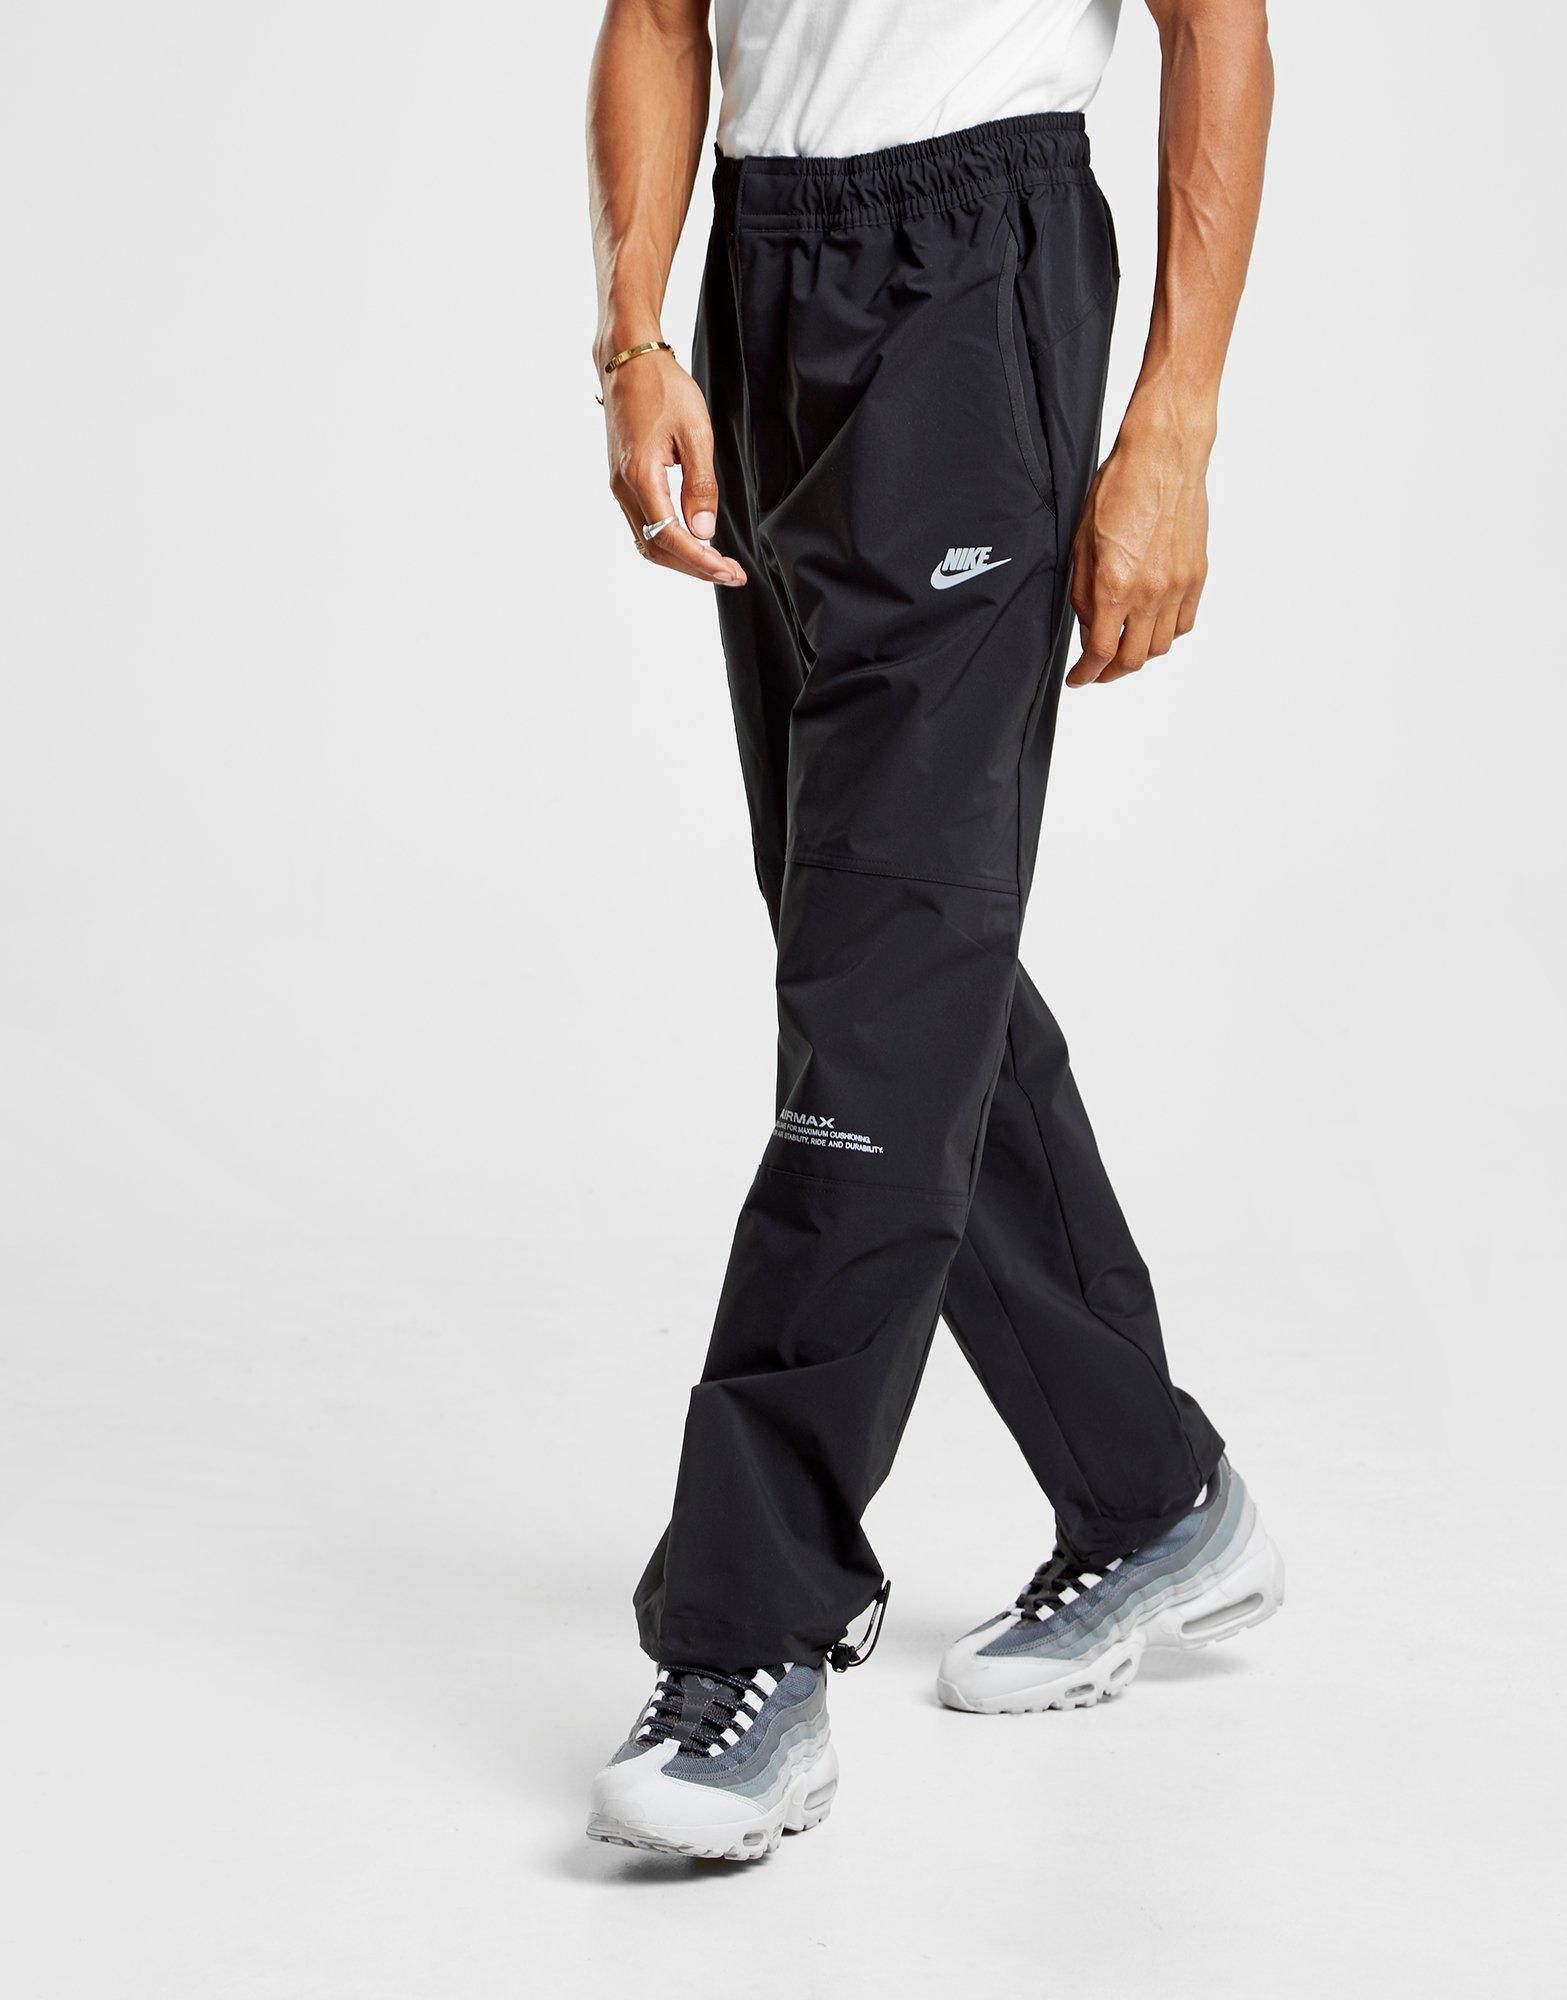 34c519277b Track Black For Men Nike Pants In Lyst Max Woven Air qxtP8w0PY